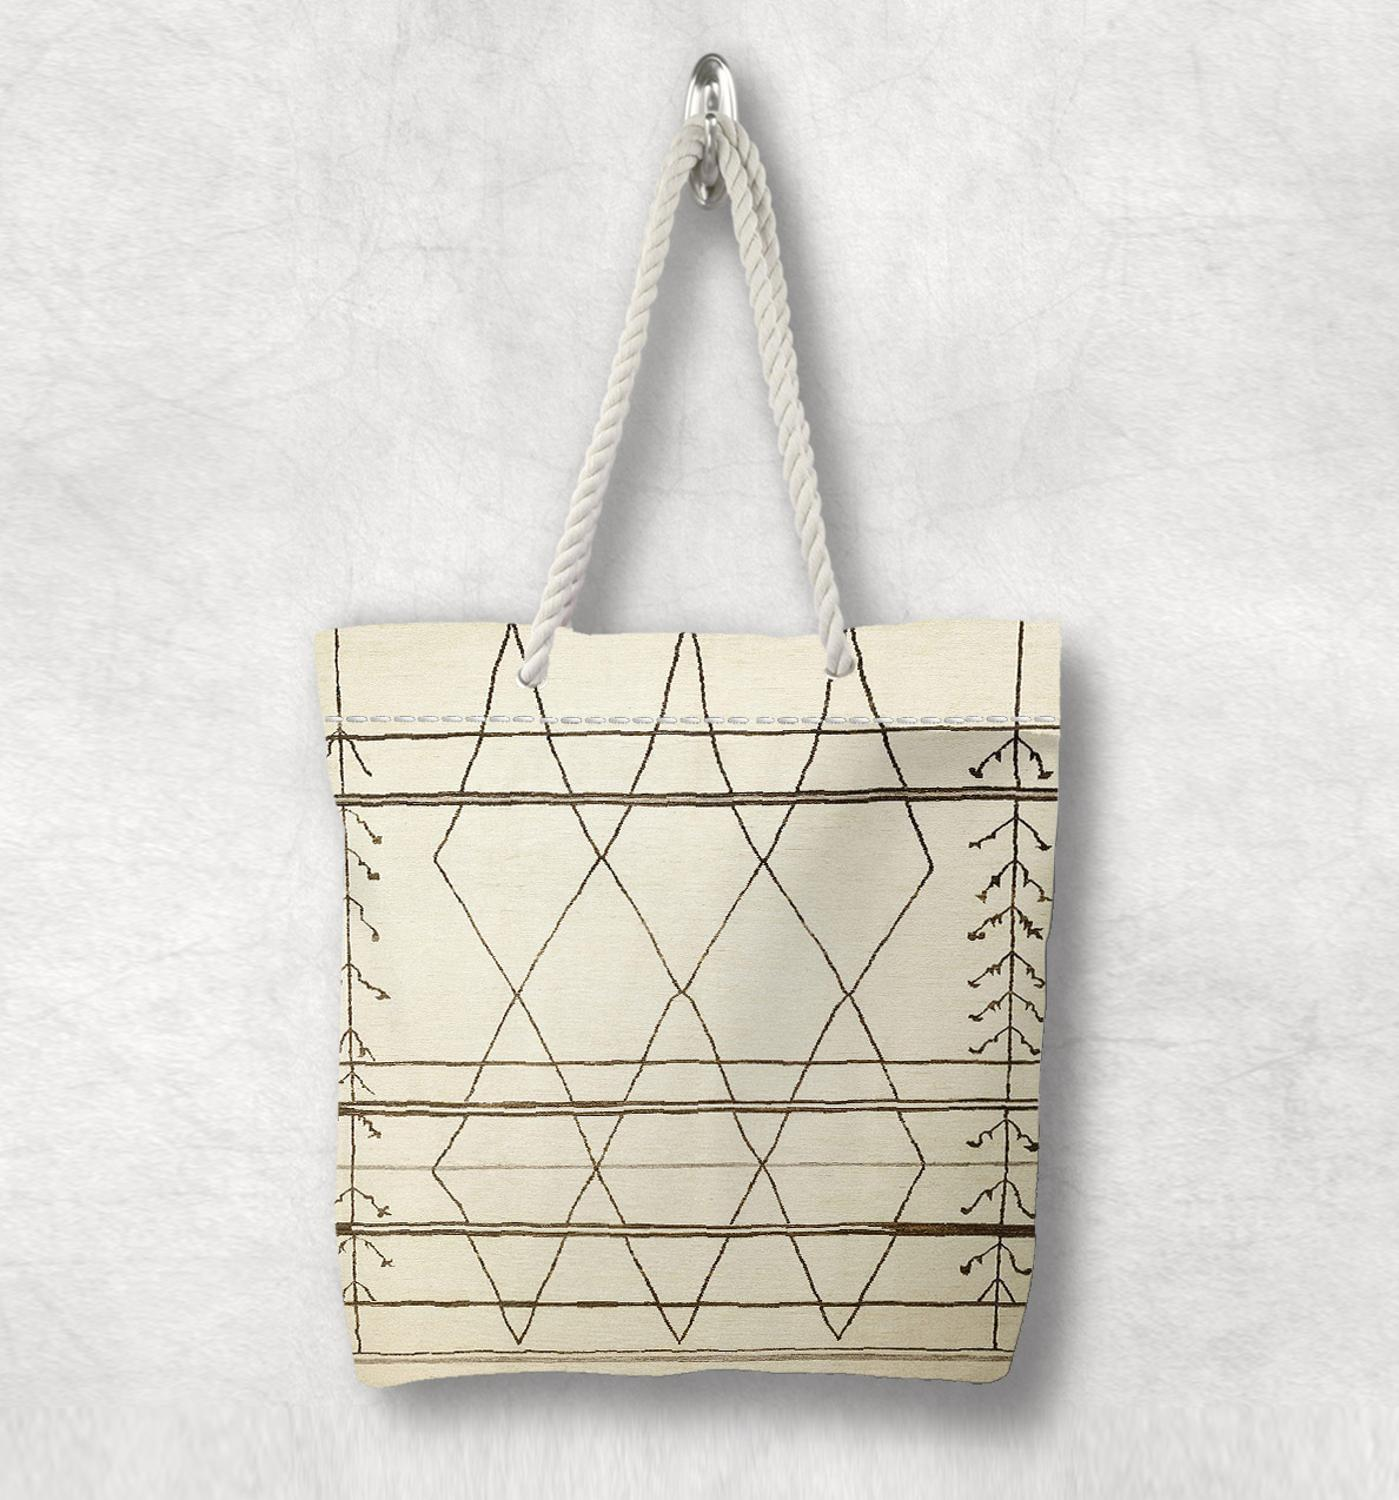 Else Beige Brown Retro Anatolia Antique Kilim Design White Rope Handle Canvas Bag Cotton Canvas Zippered Tote Bag Shoulder Bag